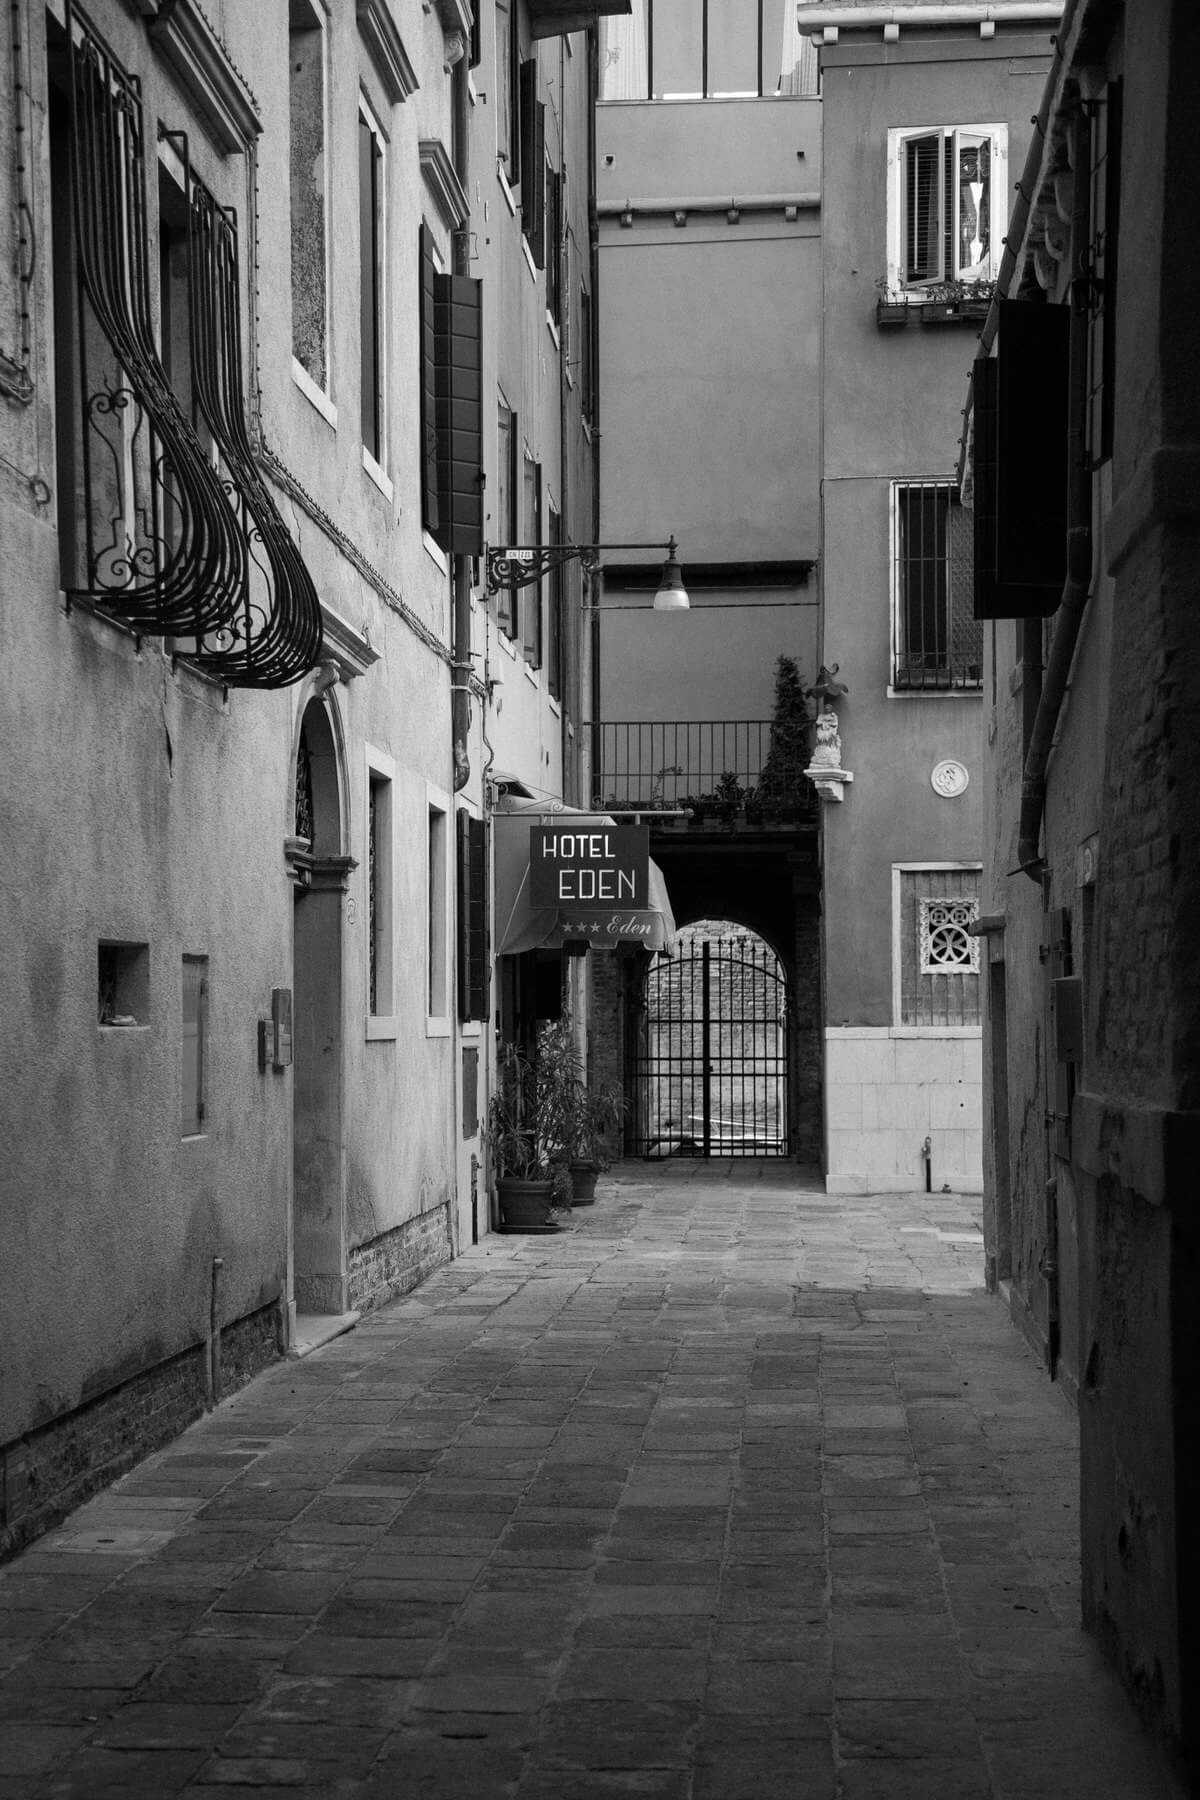 Venice-Italy-black-and-white-fine-art-photography-by-Studio-L-photographer-Laura-Schneider-_3821